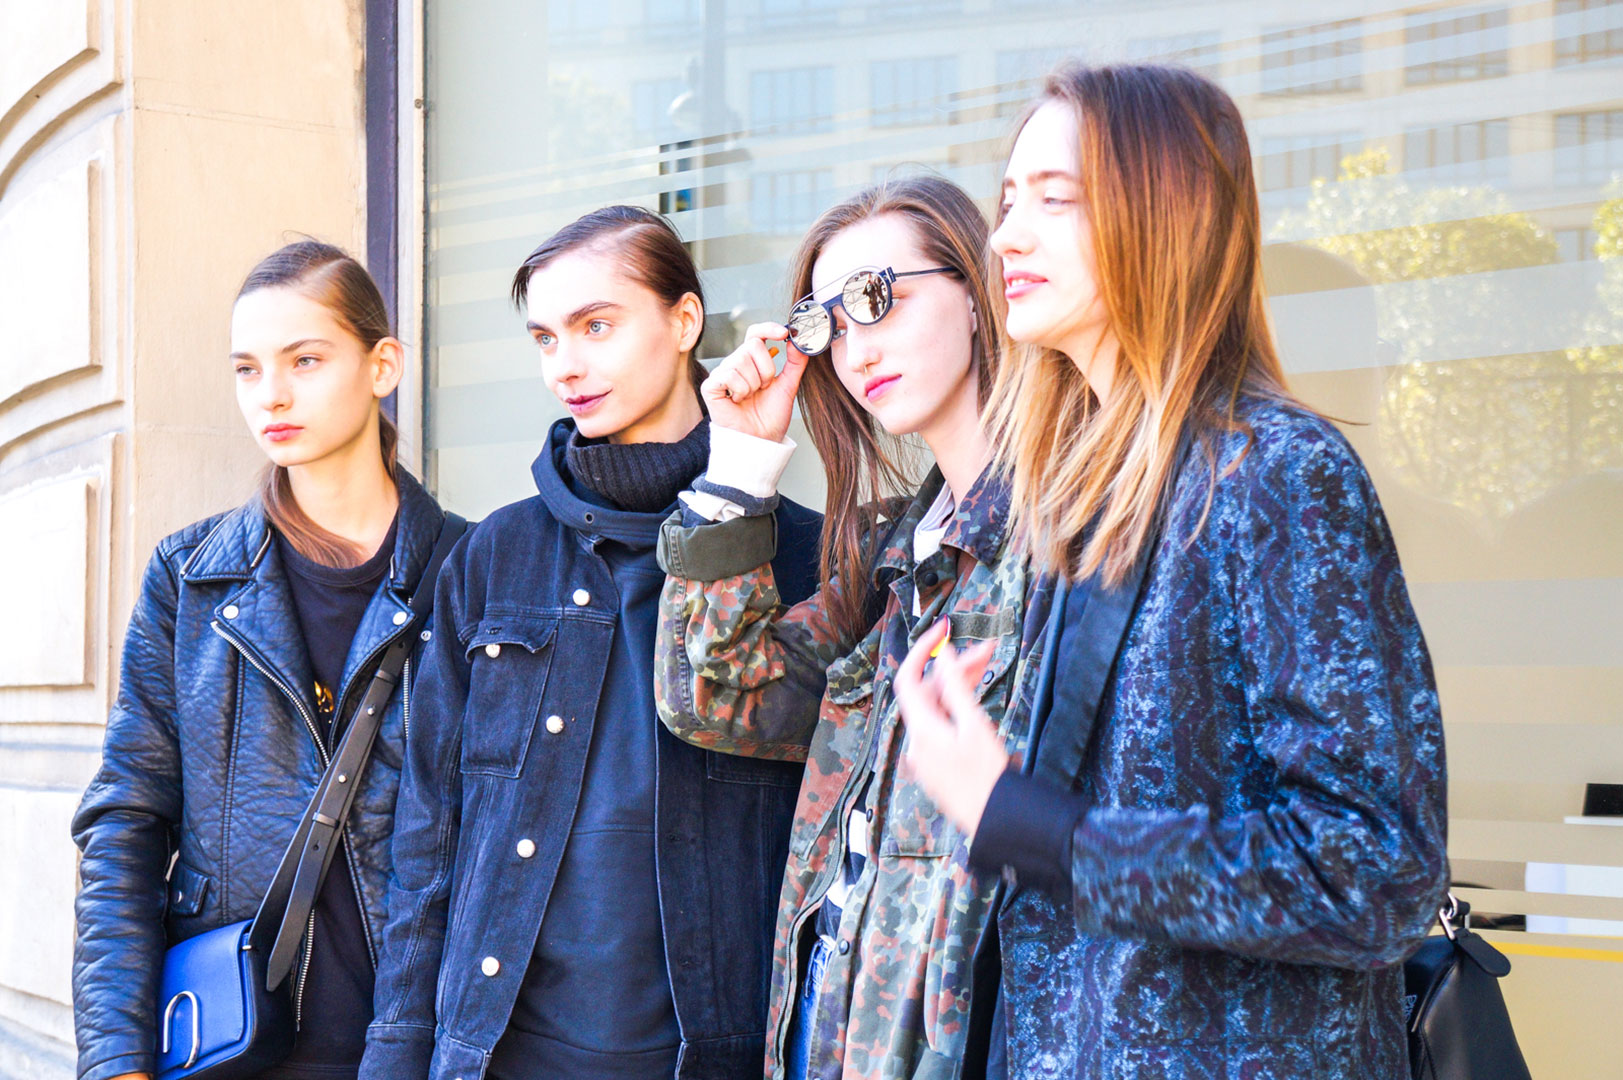 my-paris-fashion-week-diary-paris-by-polina-paraskevopoulou-all-rights-reserved-18